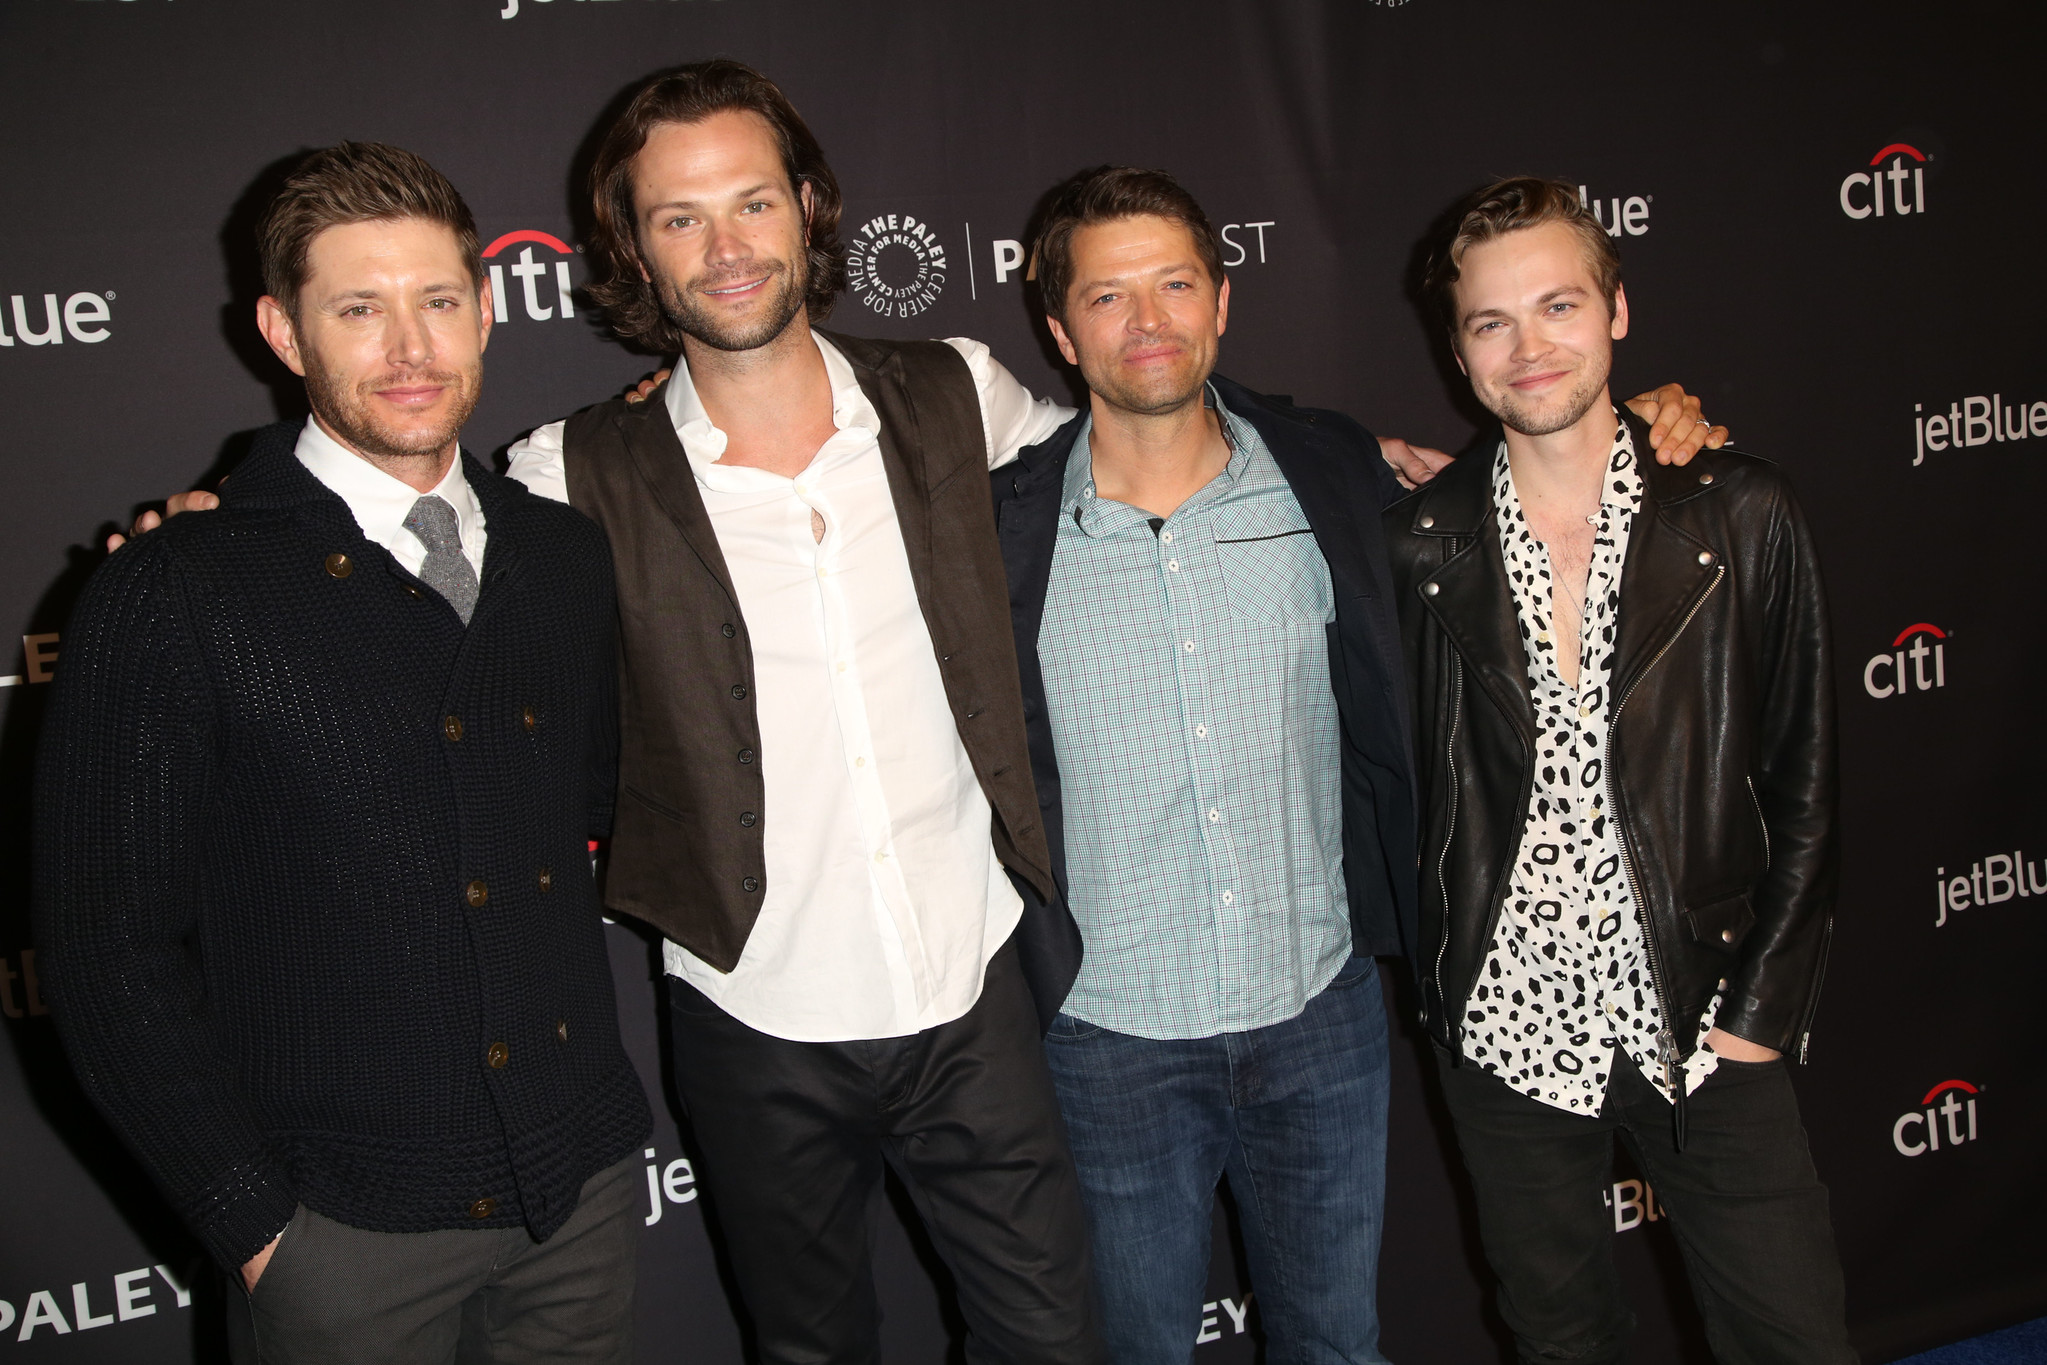 (L-R): Jensen Ackles, Jared Padalecki, Misha Collins, and Alexander Calvert arrive at PaleyFest LA 2018 honoring Supernatural, presented by The Paley Center for Media, at the DOLBY THEATRE on March 20, 2018 in Hollywood, California. Photo Credit: Brian To for the Paley Center